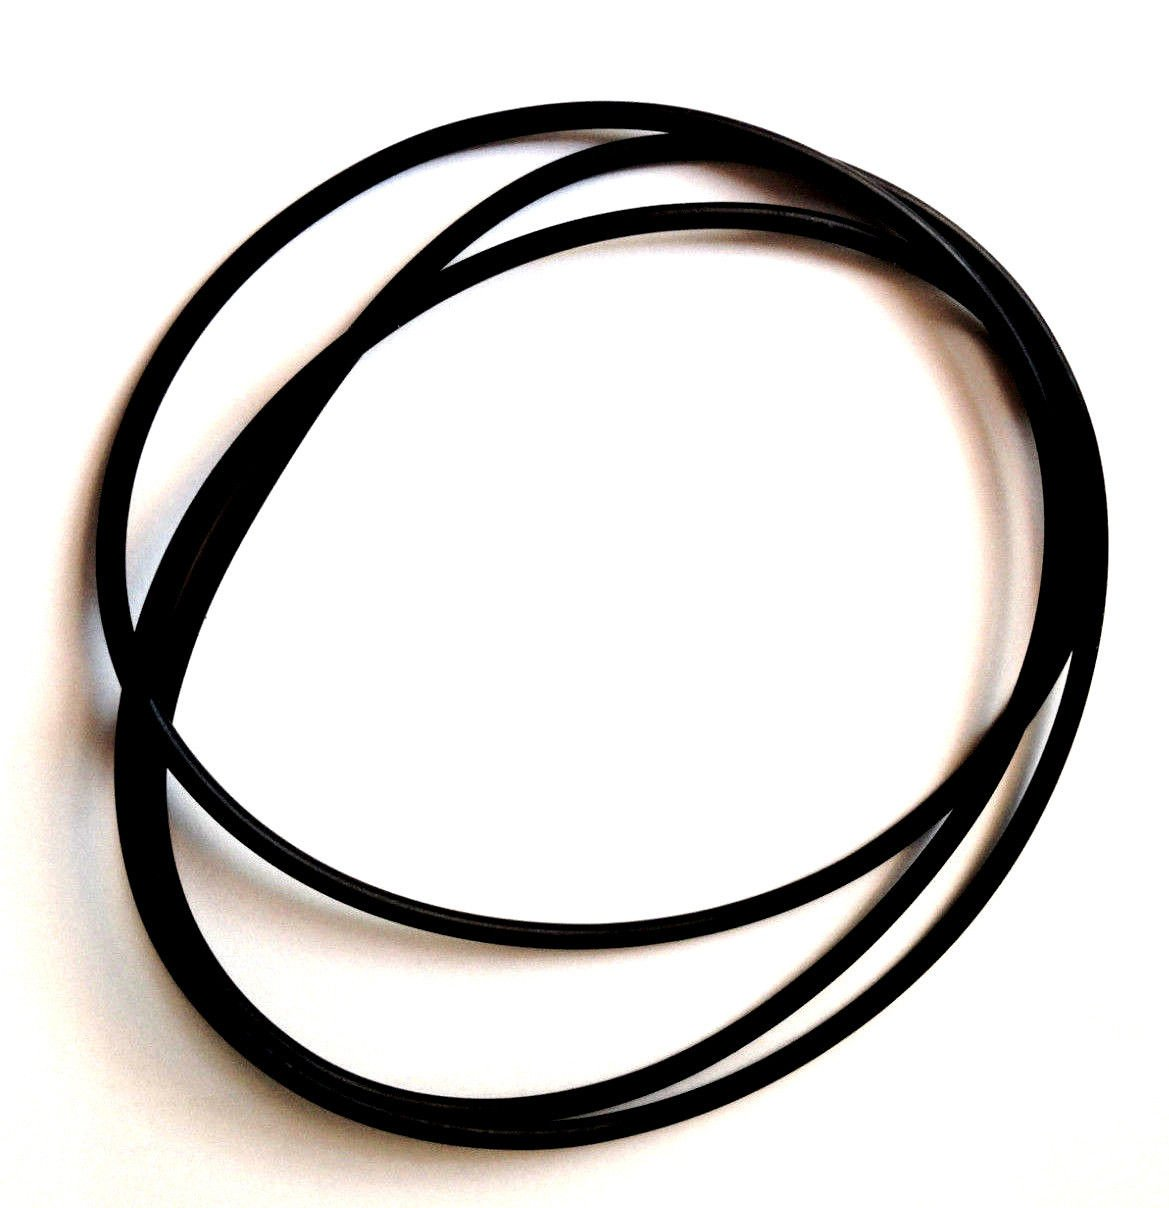 New Replacement Turntable Belt Garrard Z2000B by Unknown